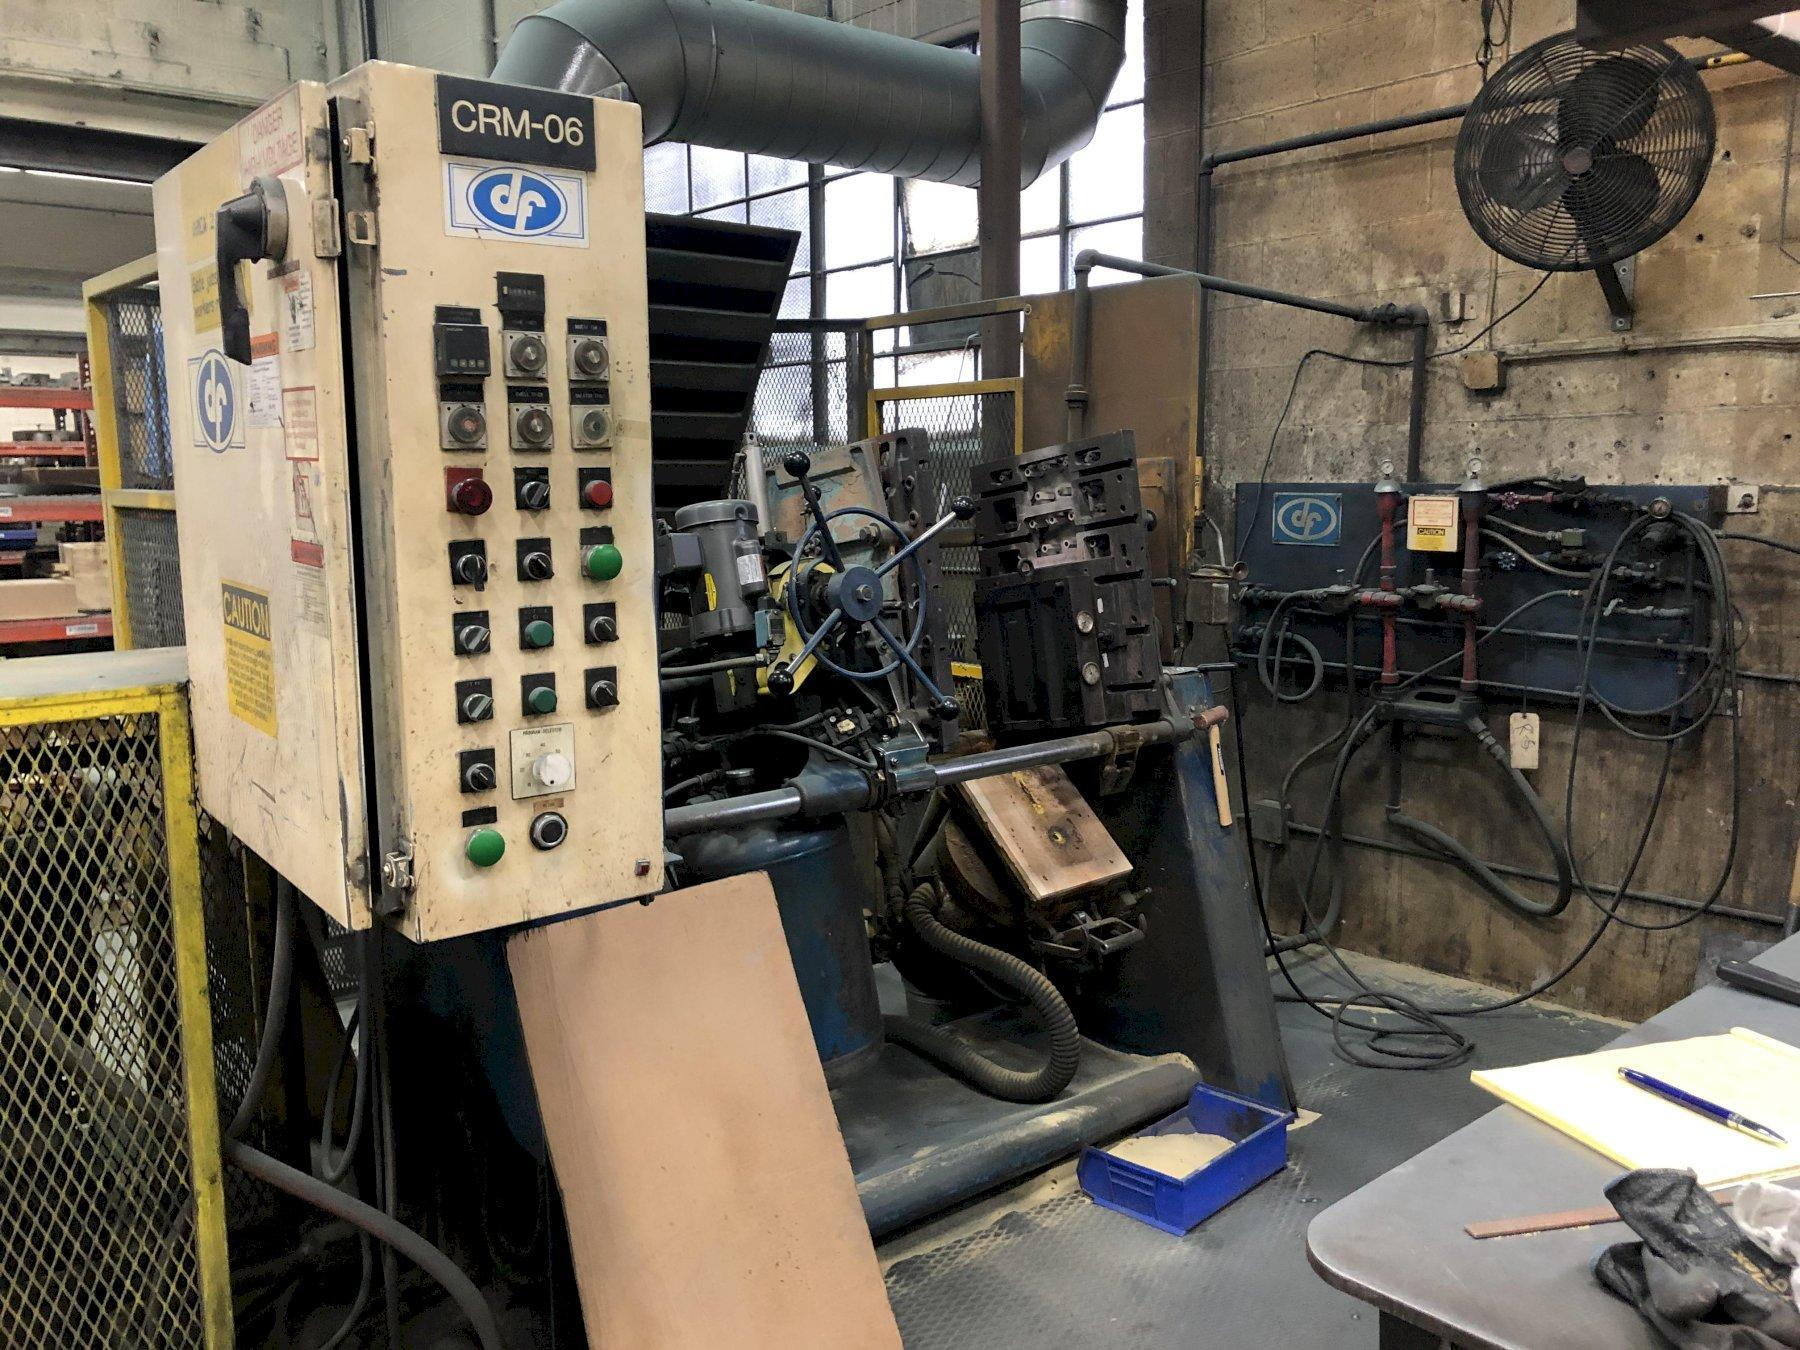 DEPENDABLE MODEL 400FA SHELL CORE MACHINE S/N 153 WITH ALLEN BRADLEY SLC150 PLC CONTROL AND GAS PANEL AND SAND FEED (EXCELLENT CONDITION)